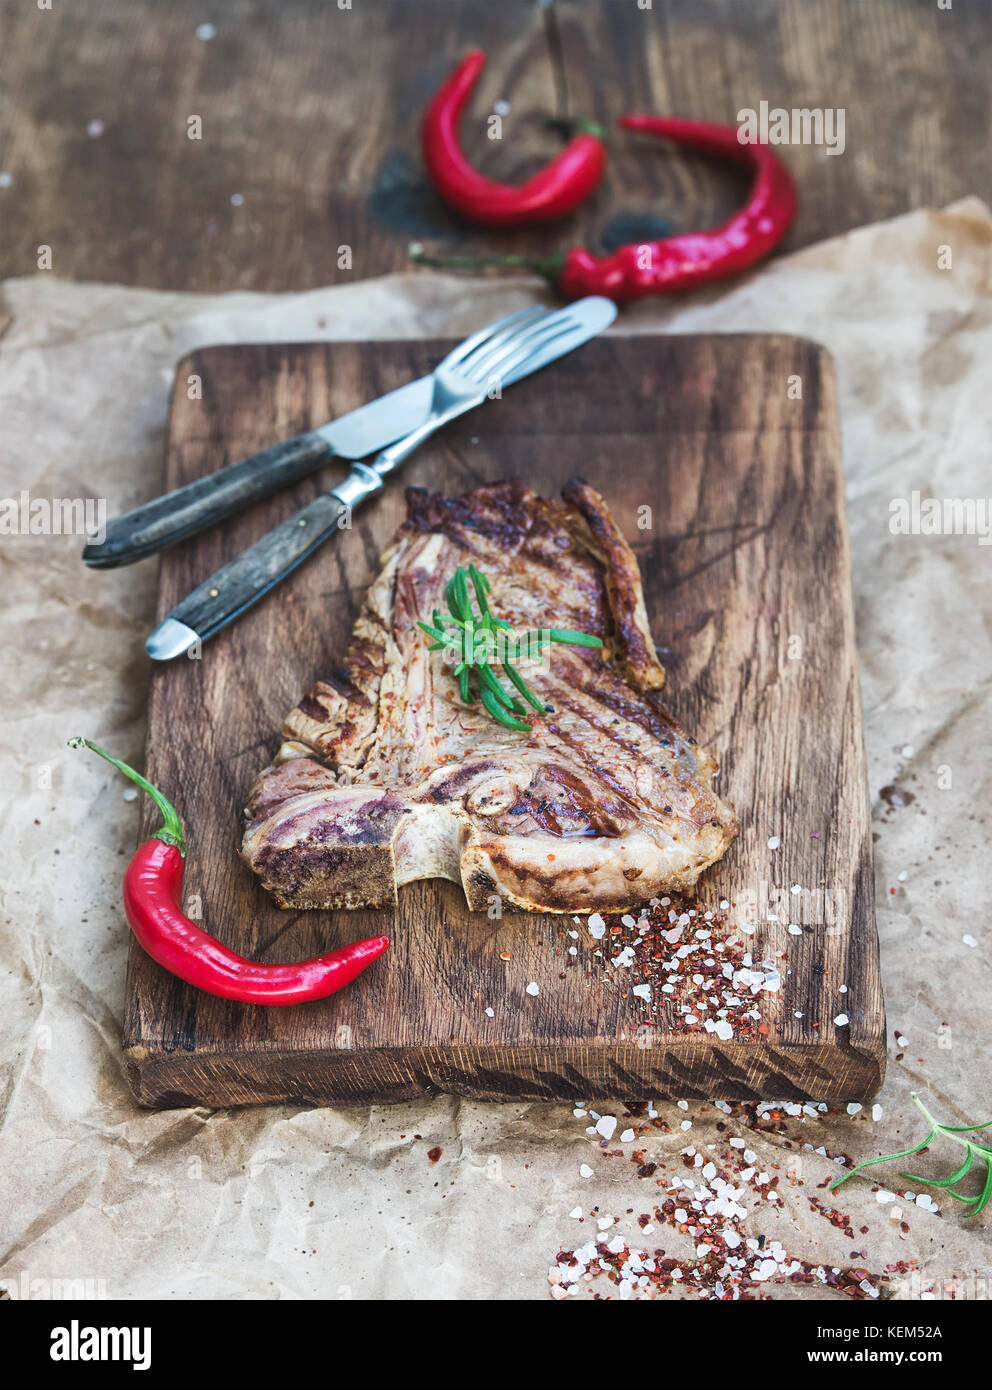 Cooked meat t-bone steak on serving board with red chili peppers, spices and fresh rosemary over oily craft paper, Stock Photo